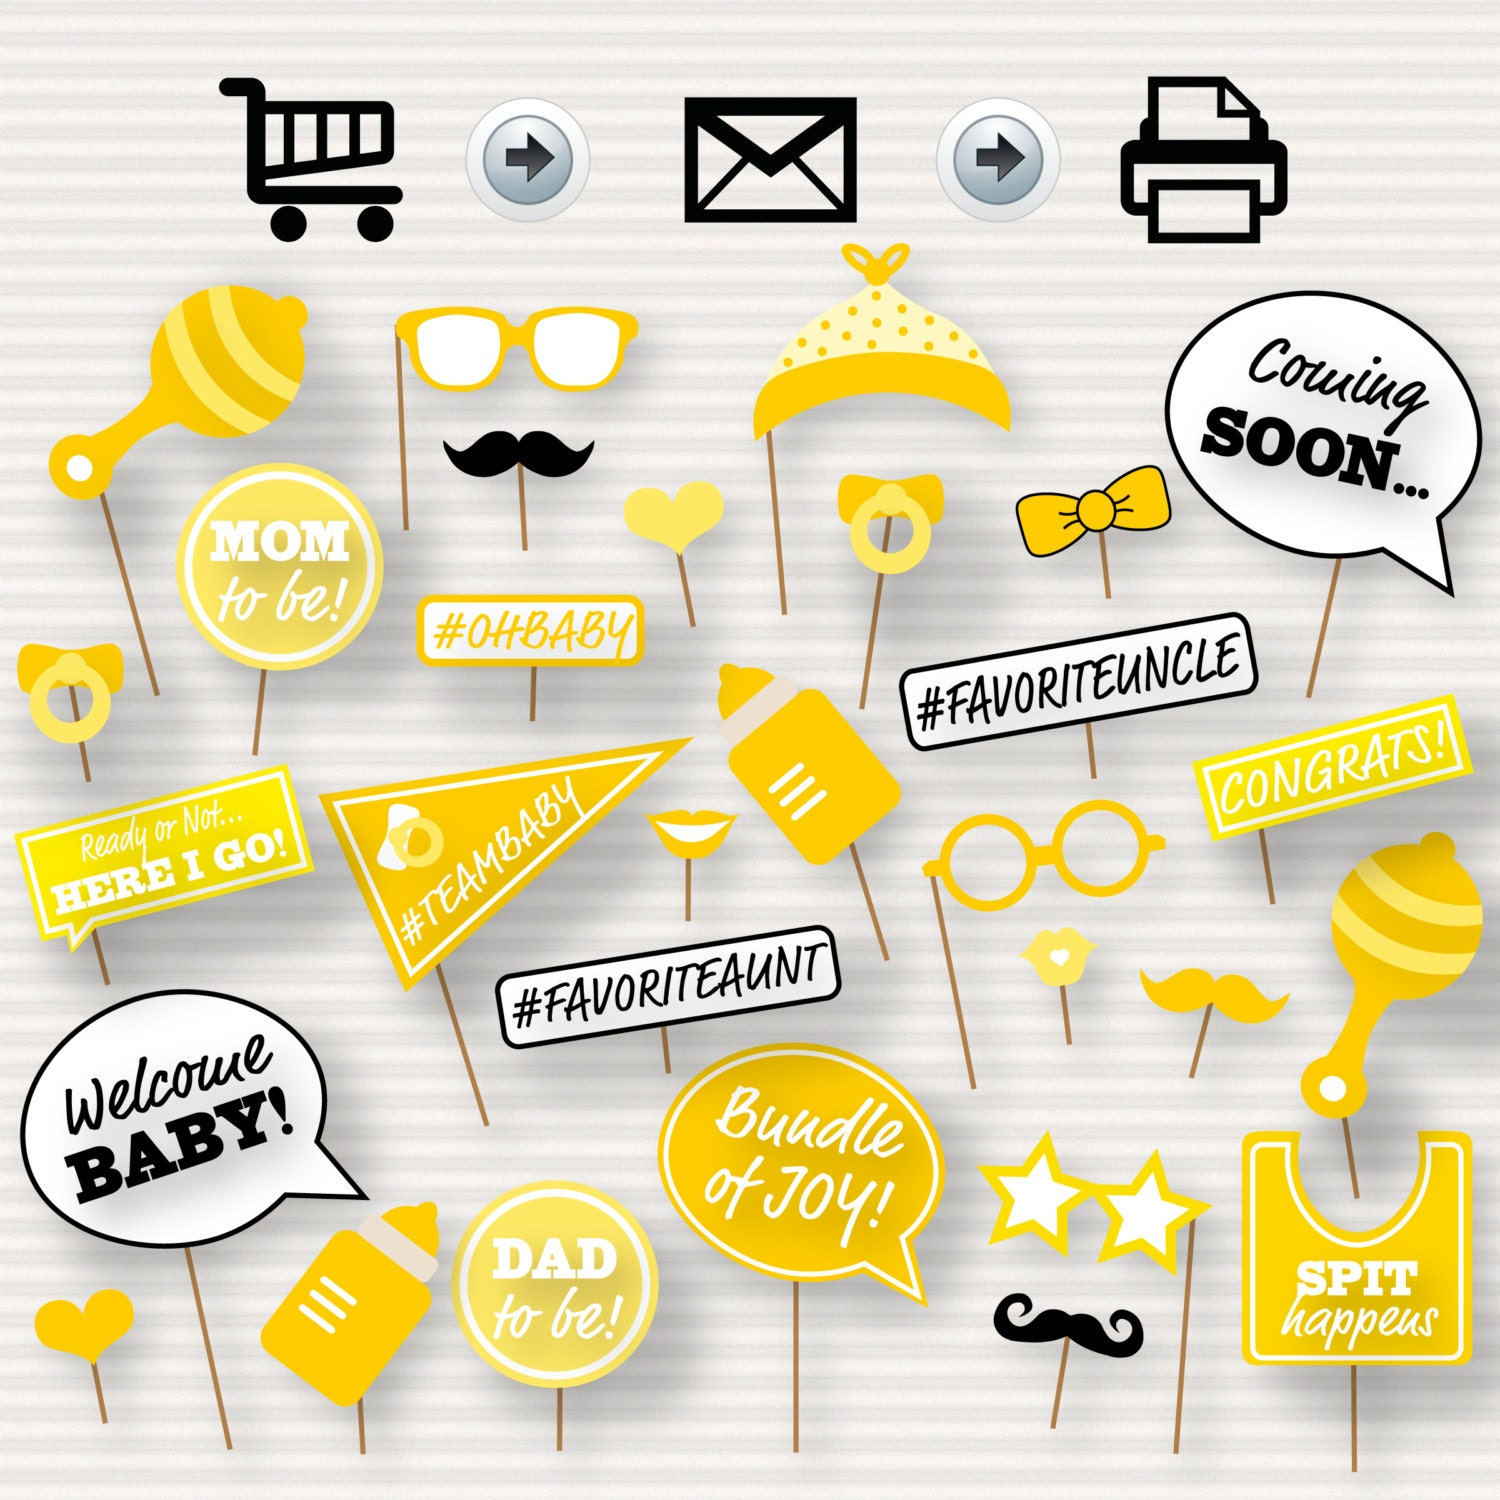 photo regarding Baby Shower Photo Booth Props Printable known as Boy or girl Shower Printable Picture Booth Props - Boy or girl Shower Photobooth Props - Yellow Little one Shower Printables - Gender Impartial Photograph Booth -impartial